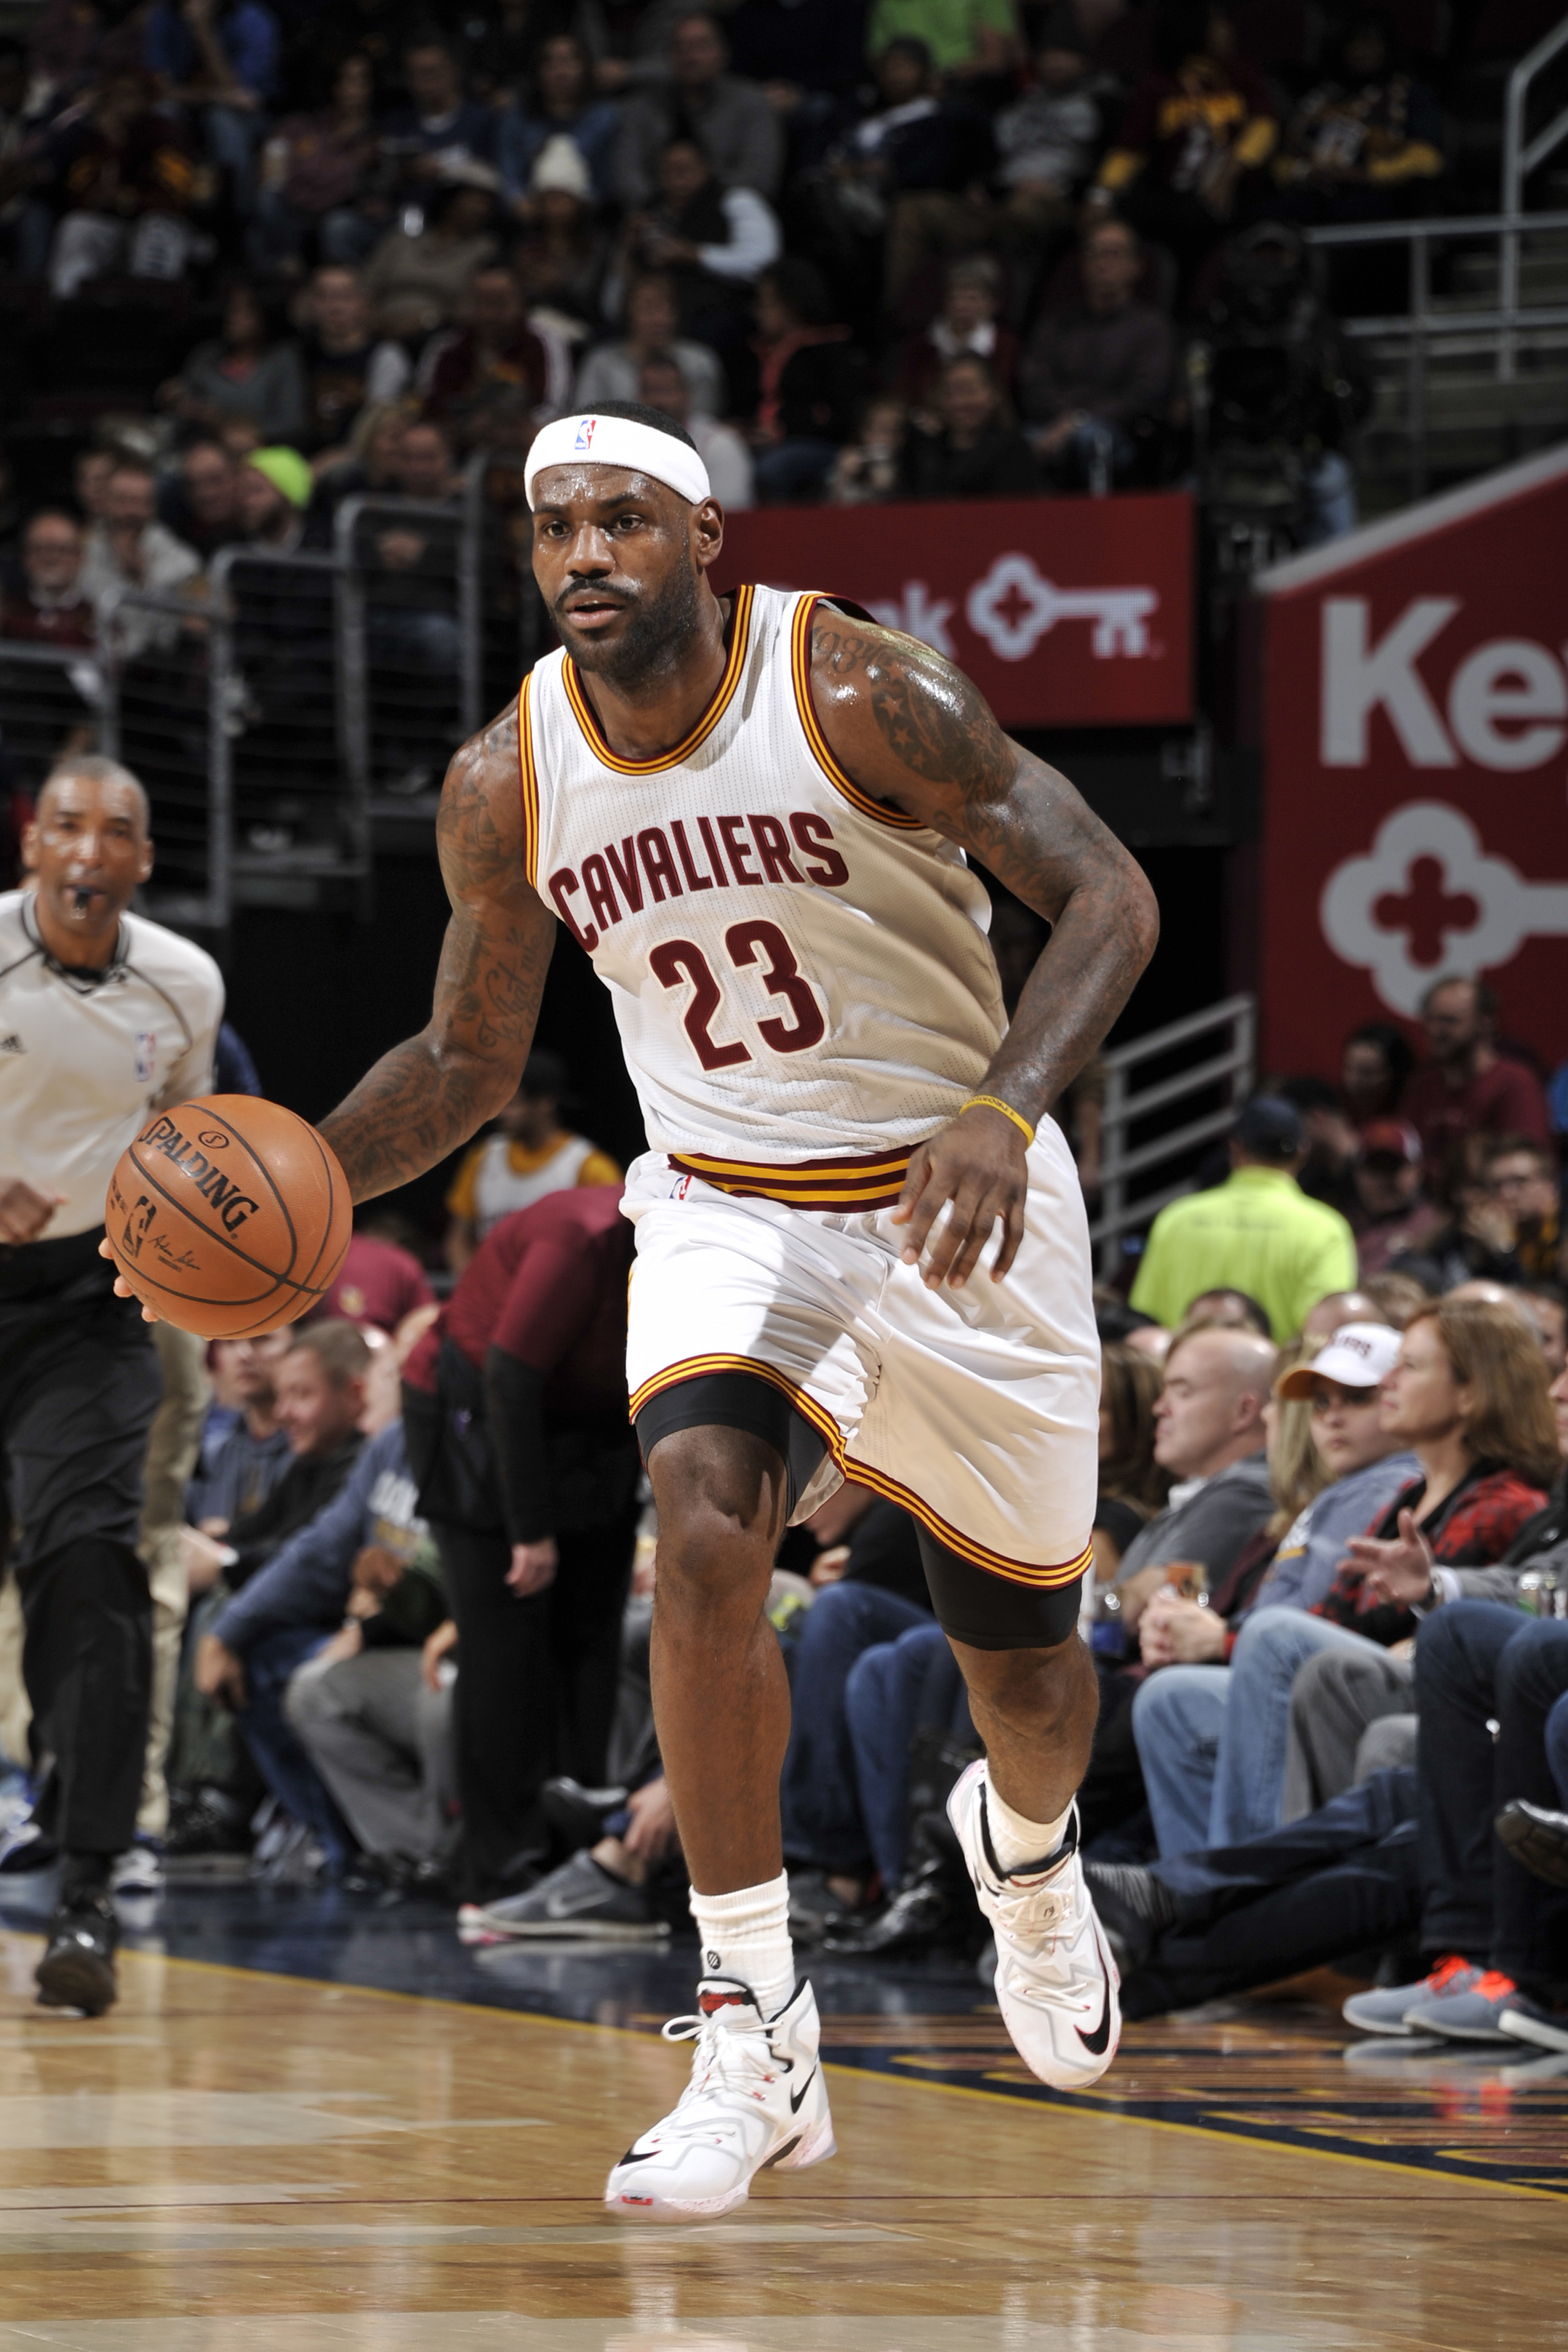 CLEVELAND, OH - NOVEMBER 23:  LeBron James #23 of the Cleveland Cavaliers dribbles the ball against the Orlando Magic on November 23, 2015 at Quicken Loans Arena in Cleveland, Ohio. (Photo by David Liam Kyle/NBAE via Getty Images)